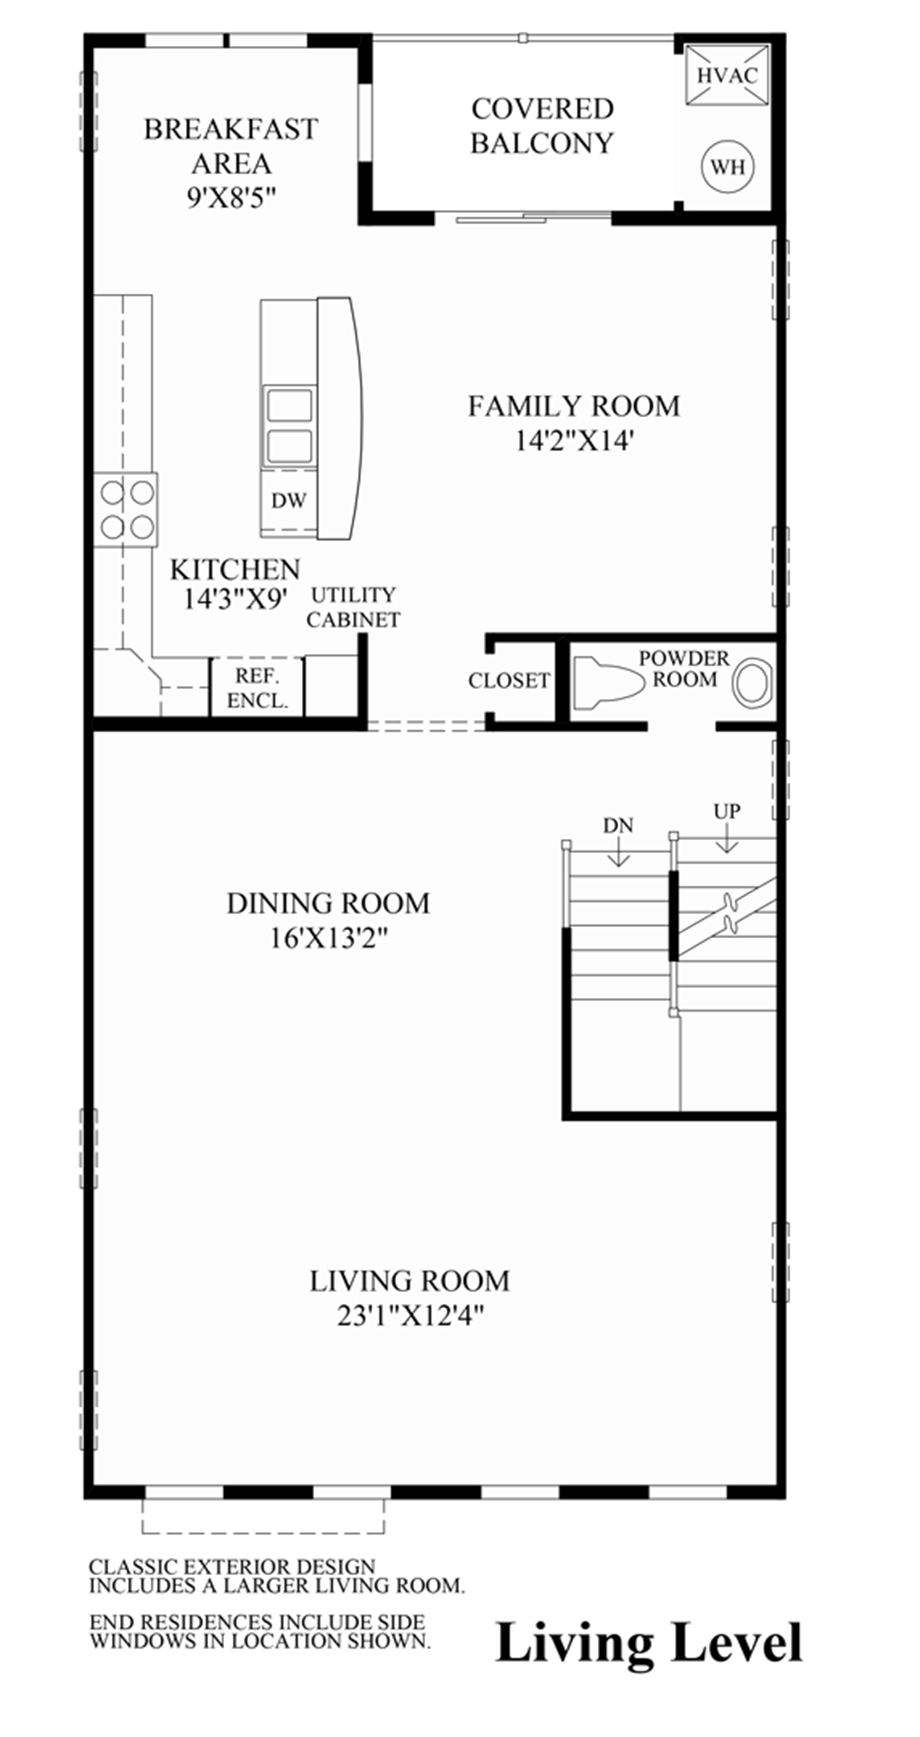 Ravenscliff at media stacked townhomes the darien home for Stacked townhouse floor plans